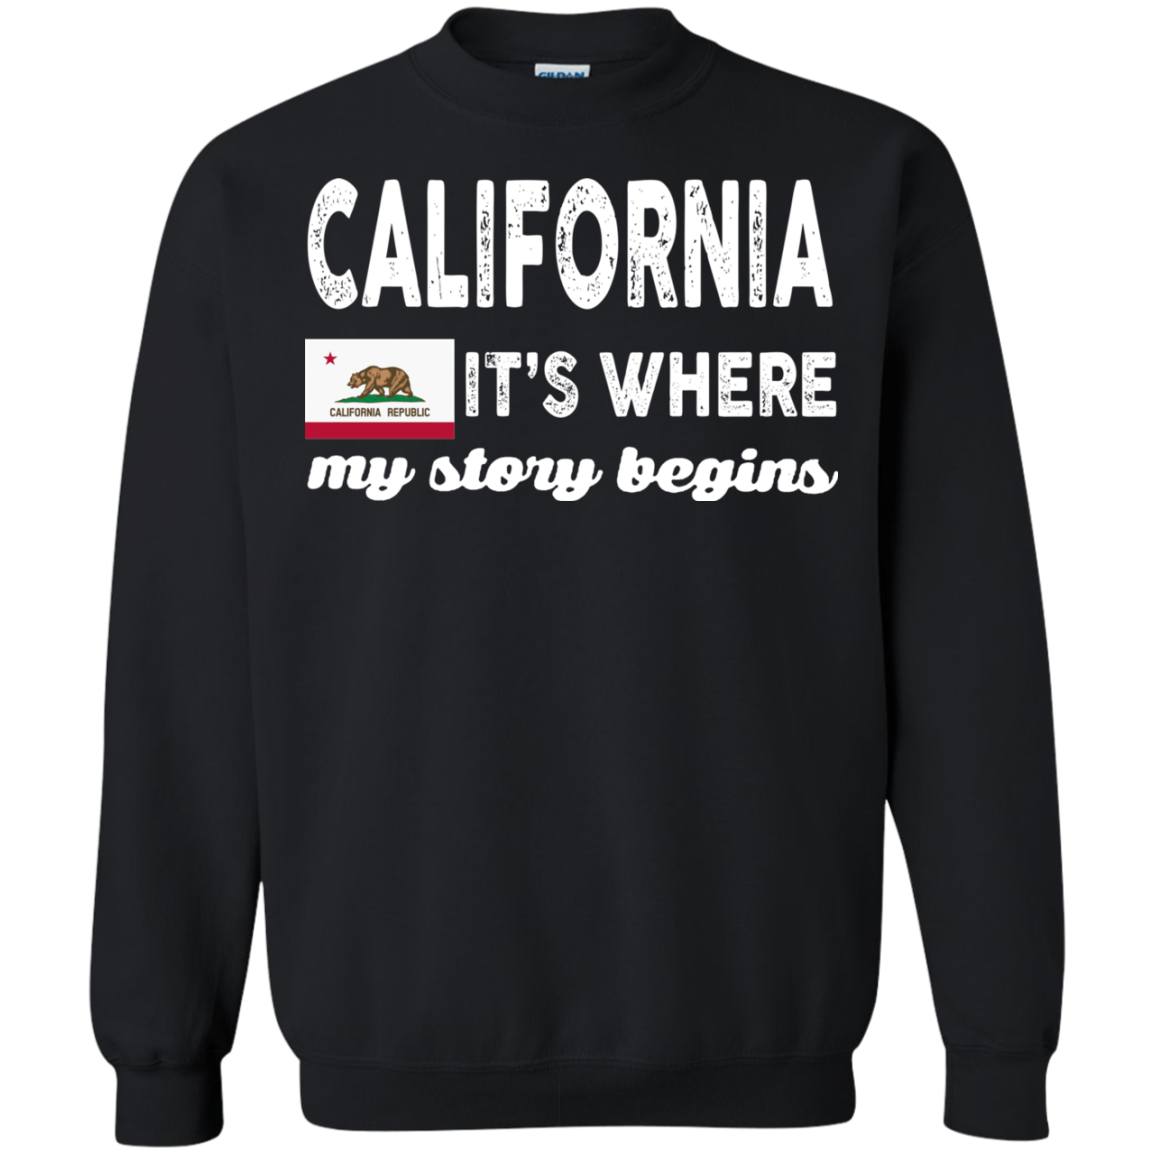 California T shirts It's Where My Story Begins Hoodies Sweatshirts TH